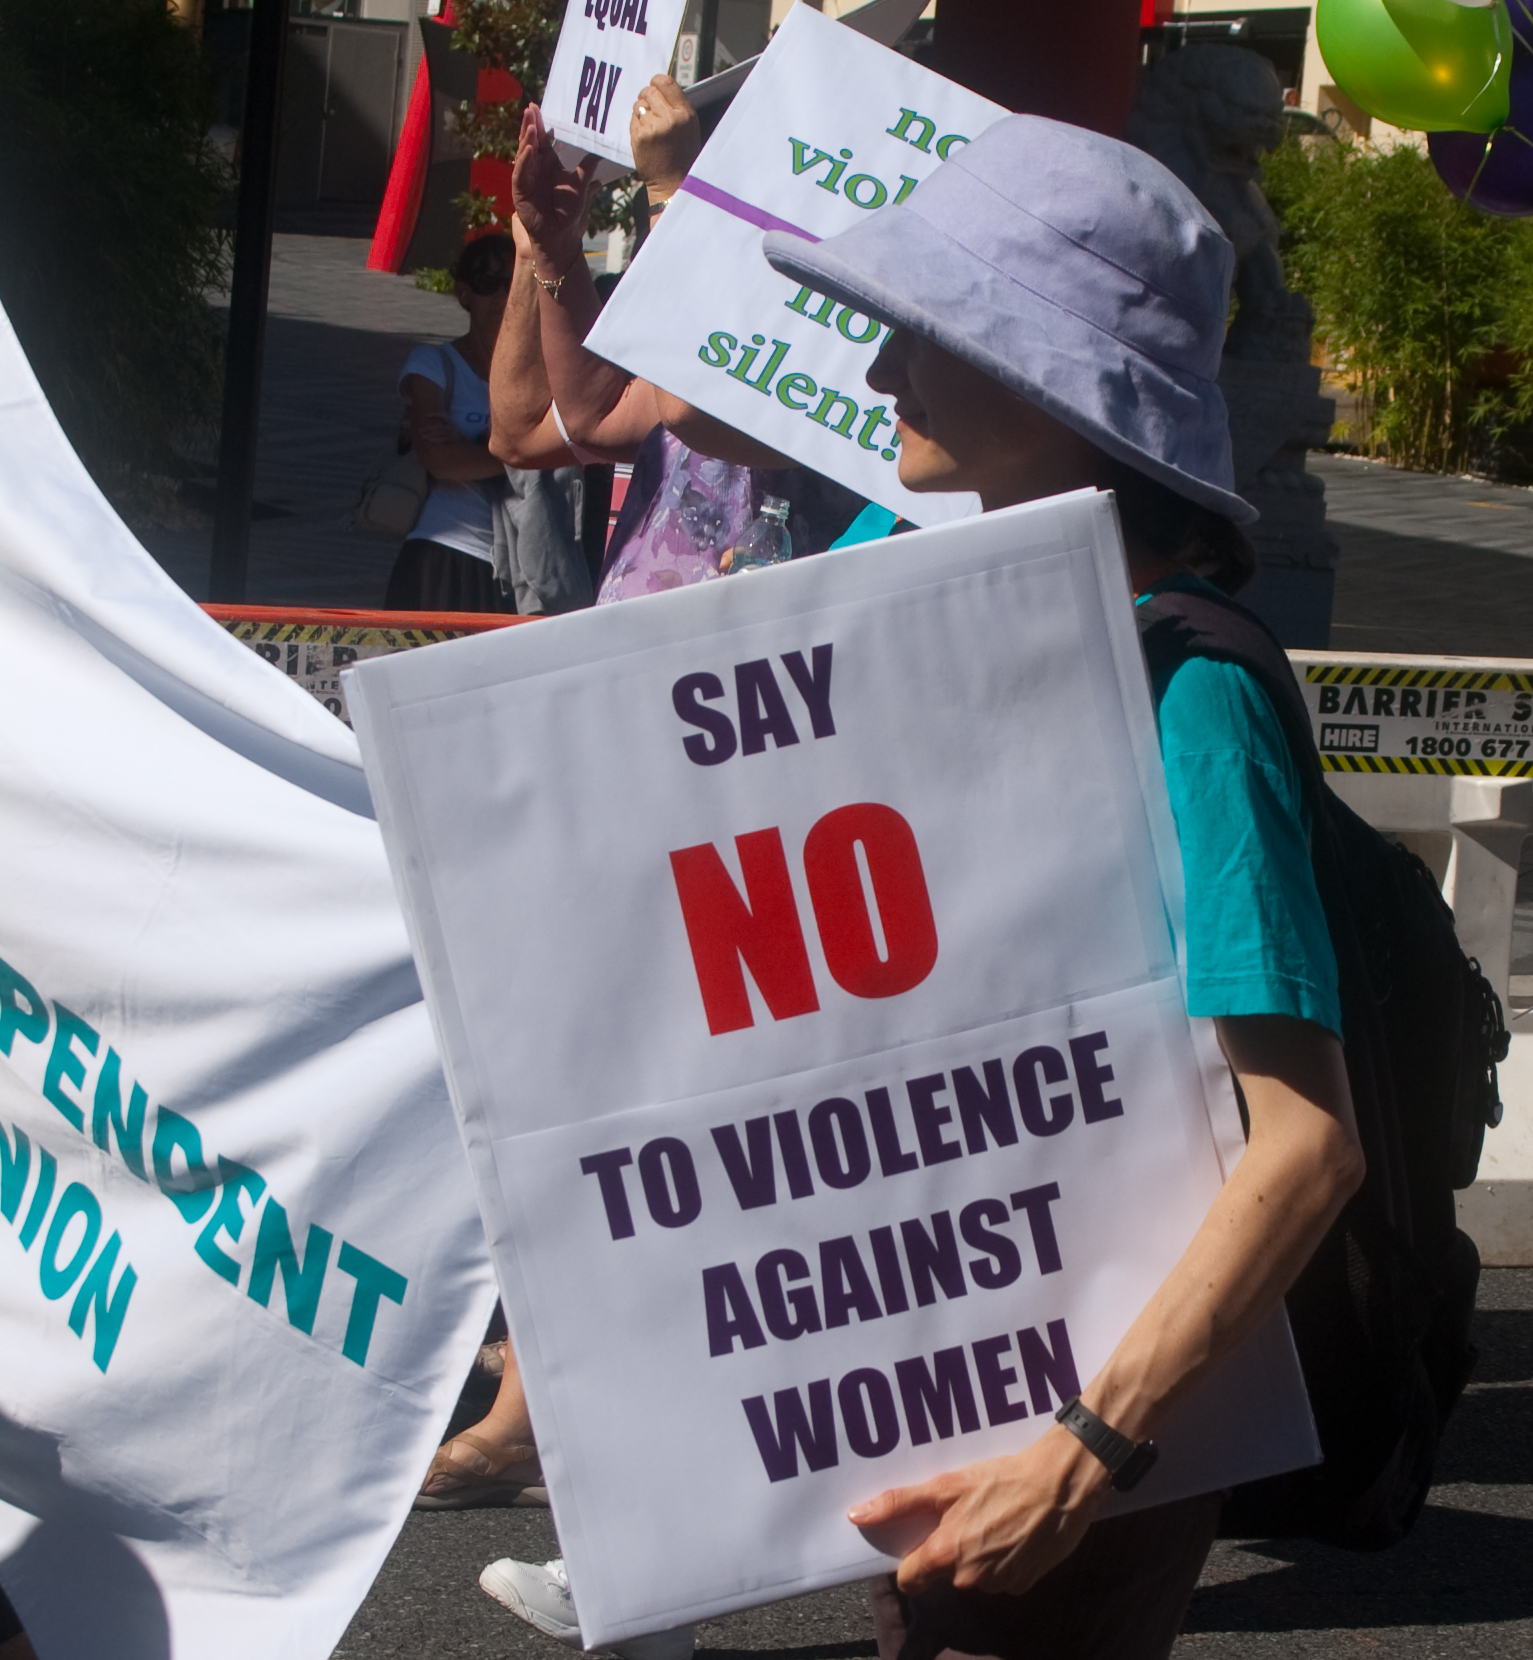 """""""IMGP6403_qtu-no-violence"""" by Rae Allen is licensed under CC BY 2.0"""